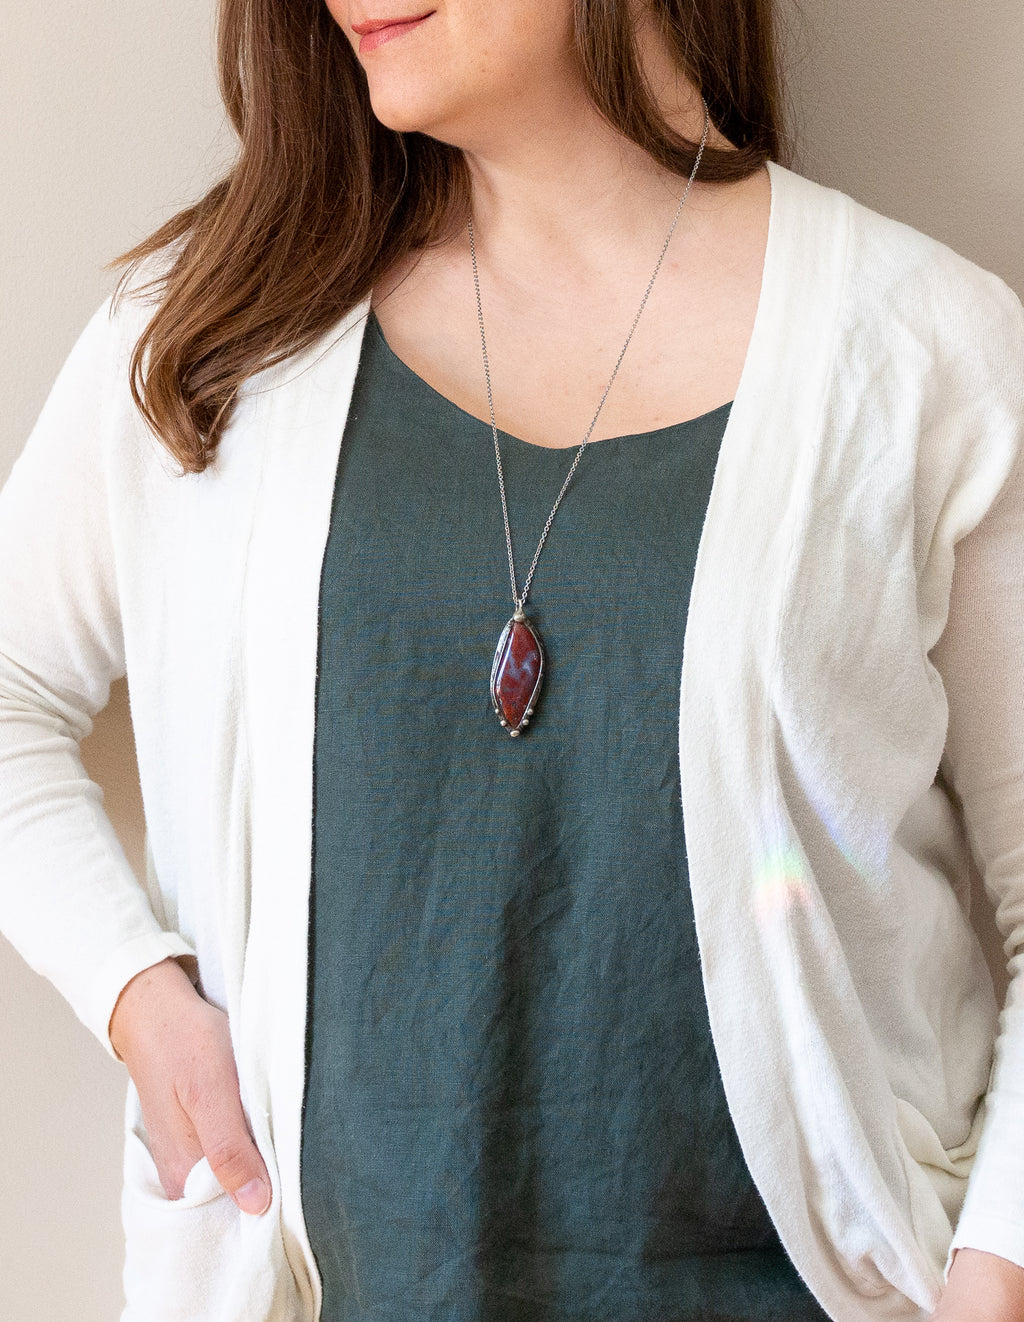 mexican red moss agate gemstone talisman necklace on woman with blue top and white cardigan